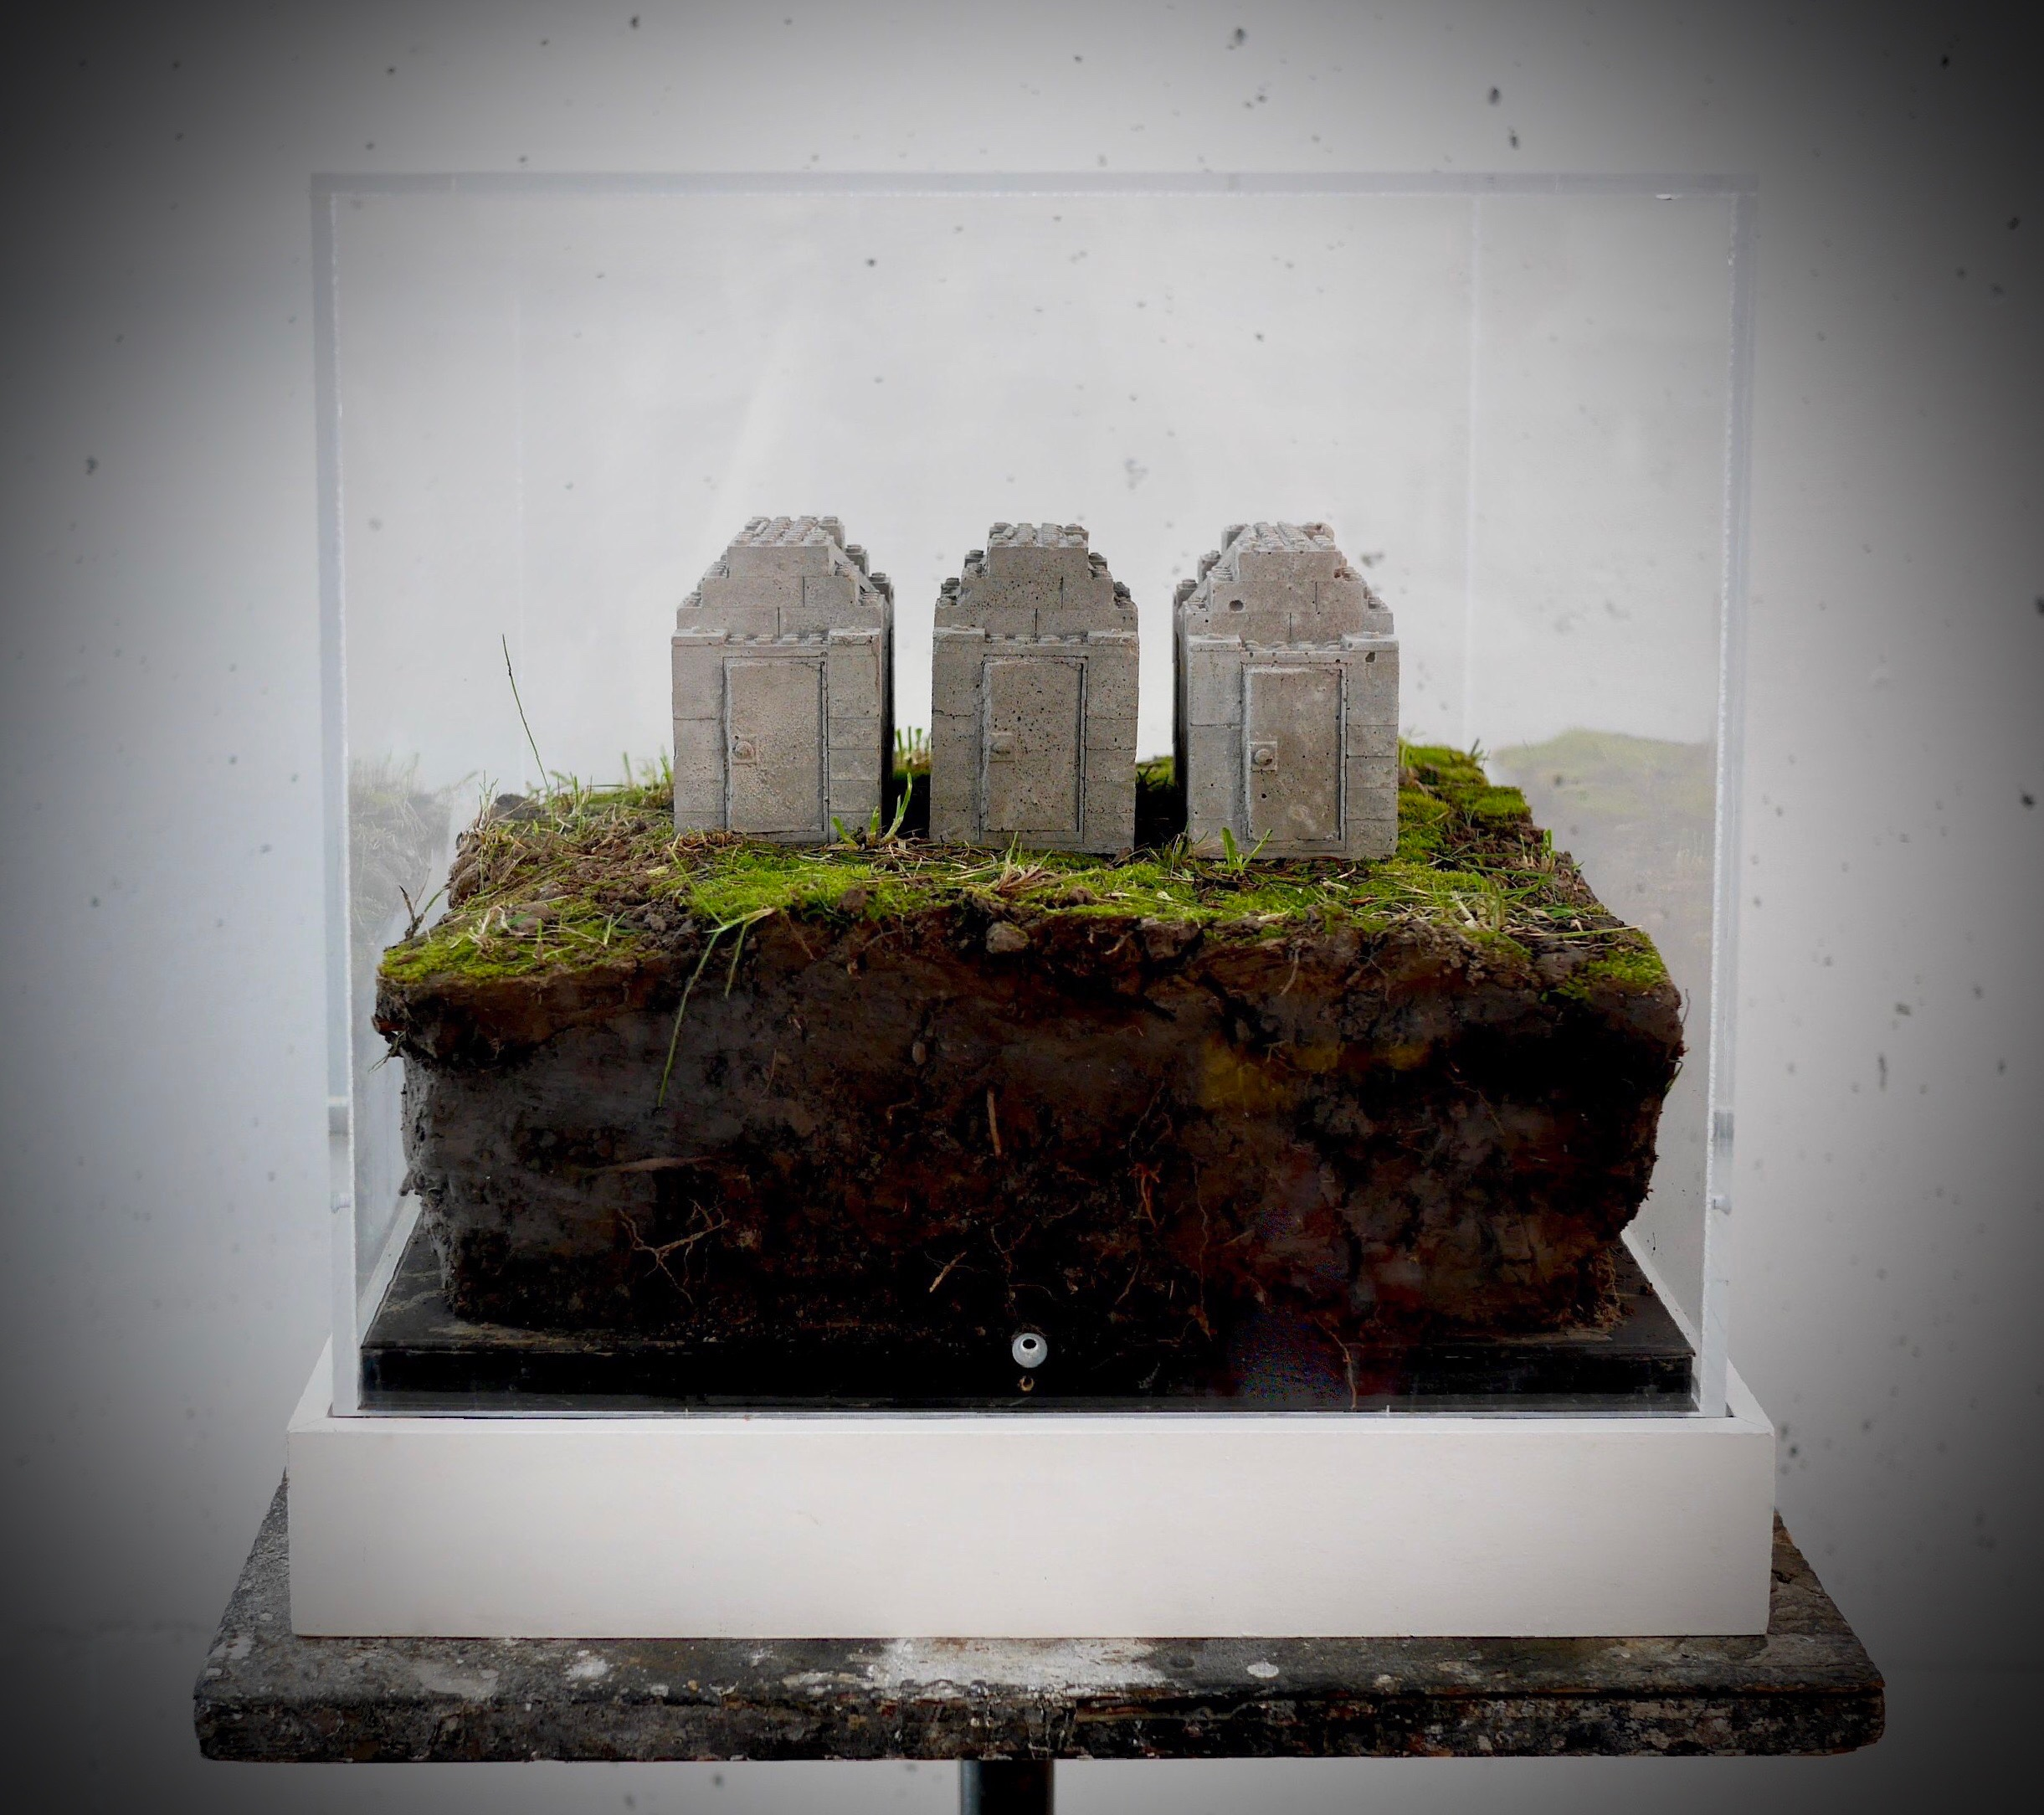 "You Can Have 3 Wishes While the Ground Still Stands   15"" x 15"" x 15""  Cast concrete lego houses, patch of Iowa ground, plexiglass case  (2017)"